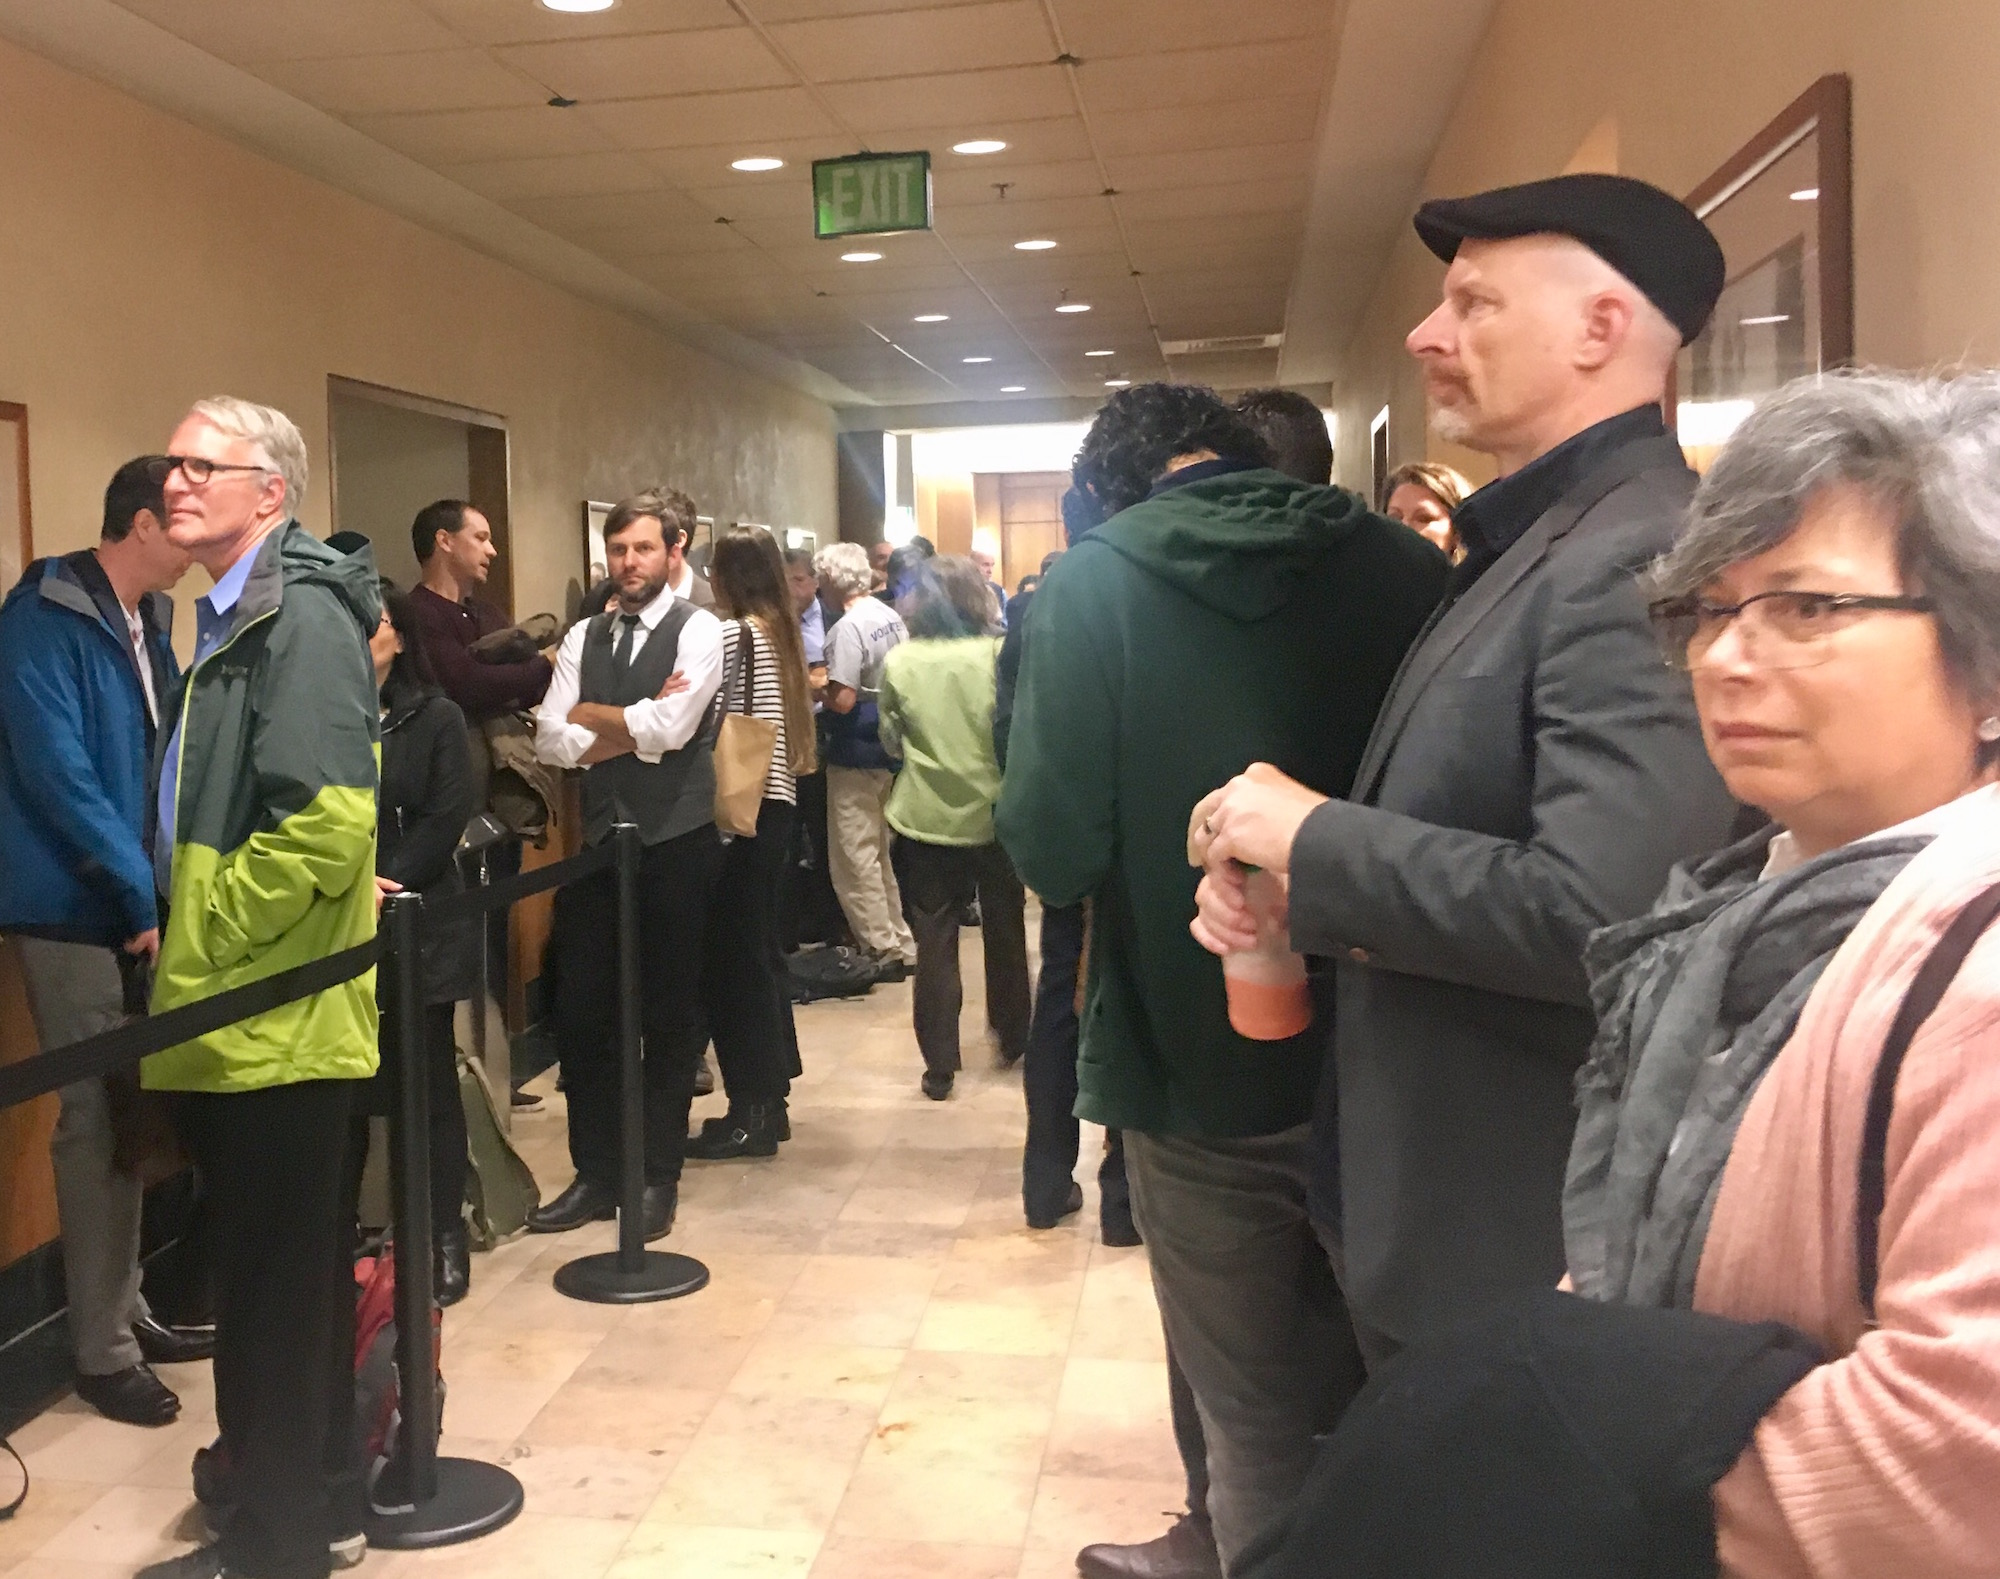 People lined up outside courtroom